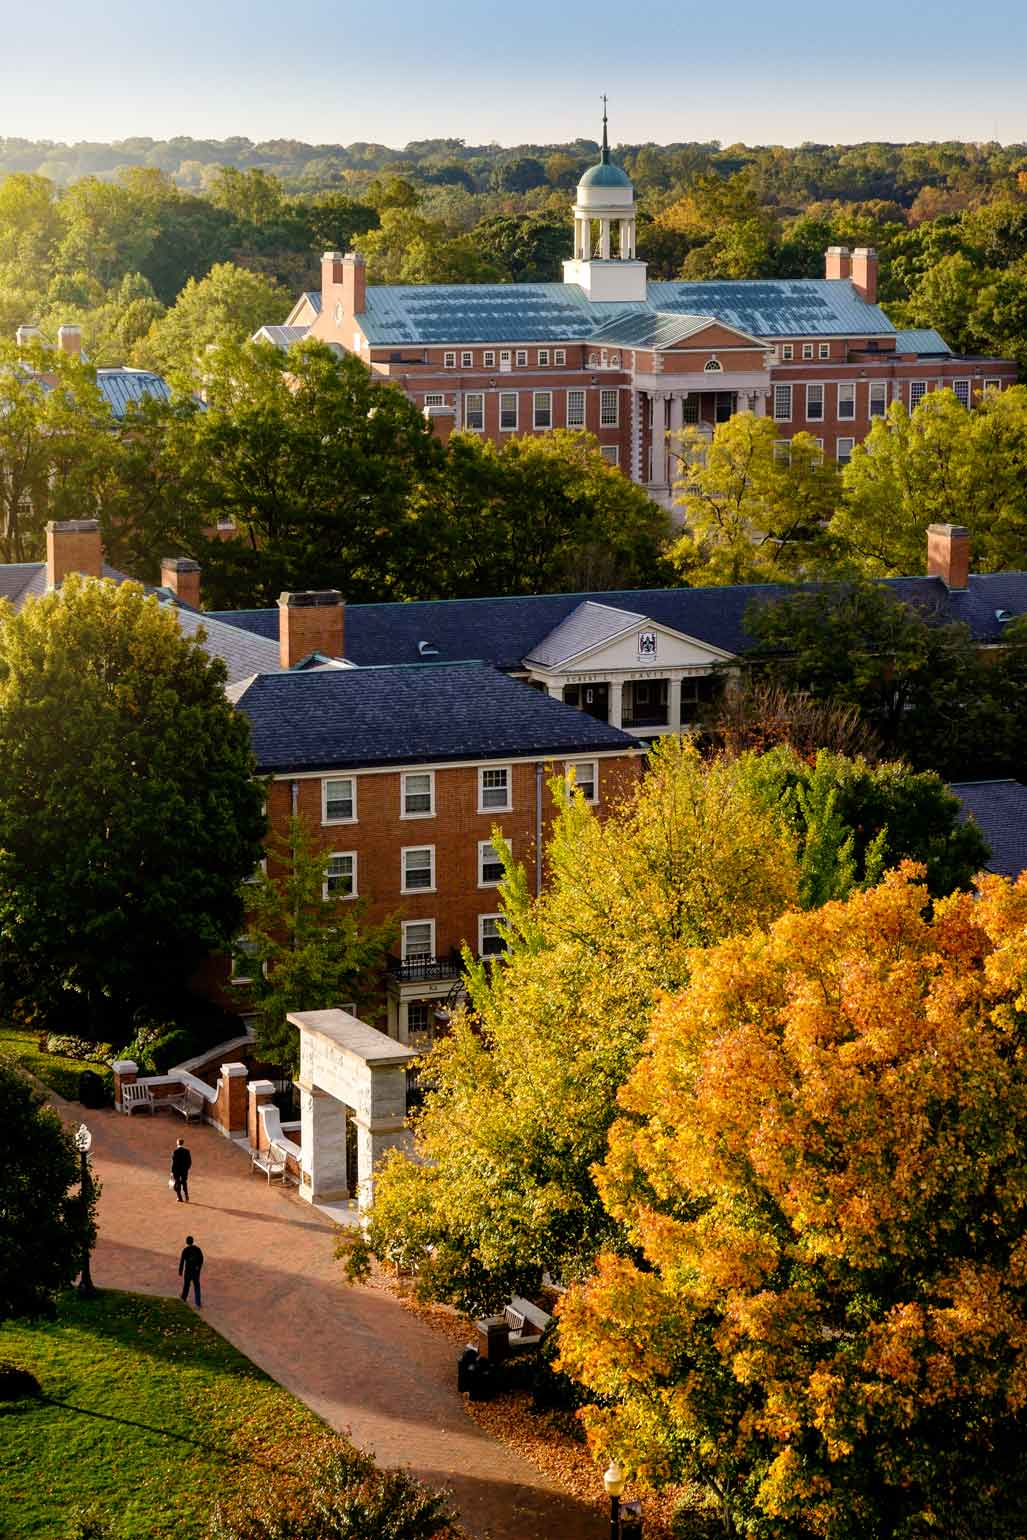 A beautiful autumn day on the Wake Forest University campus